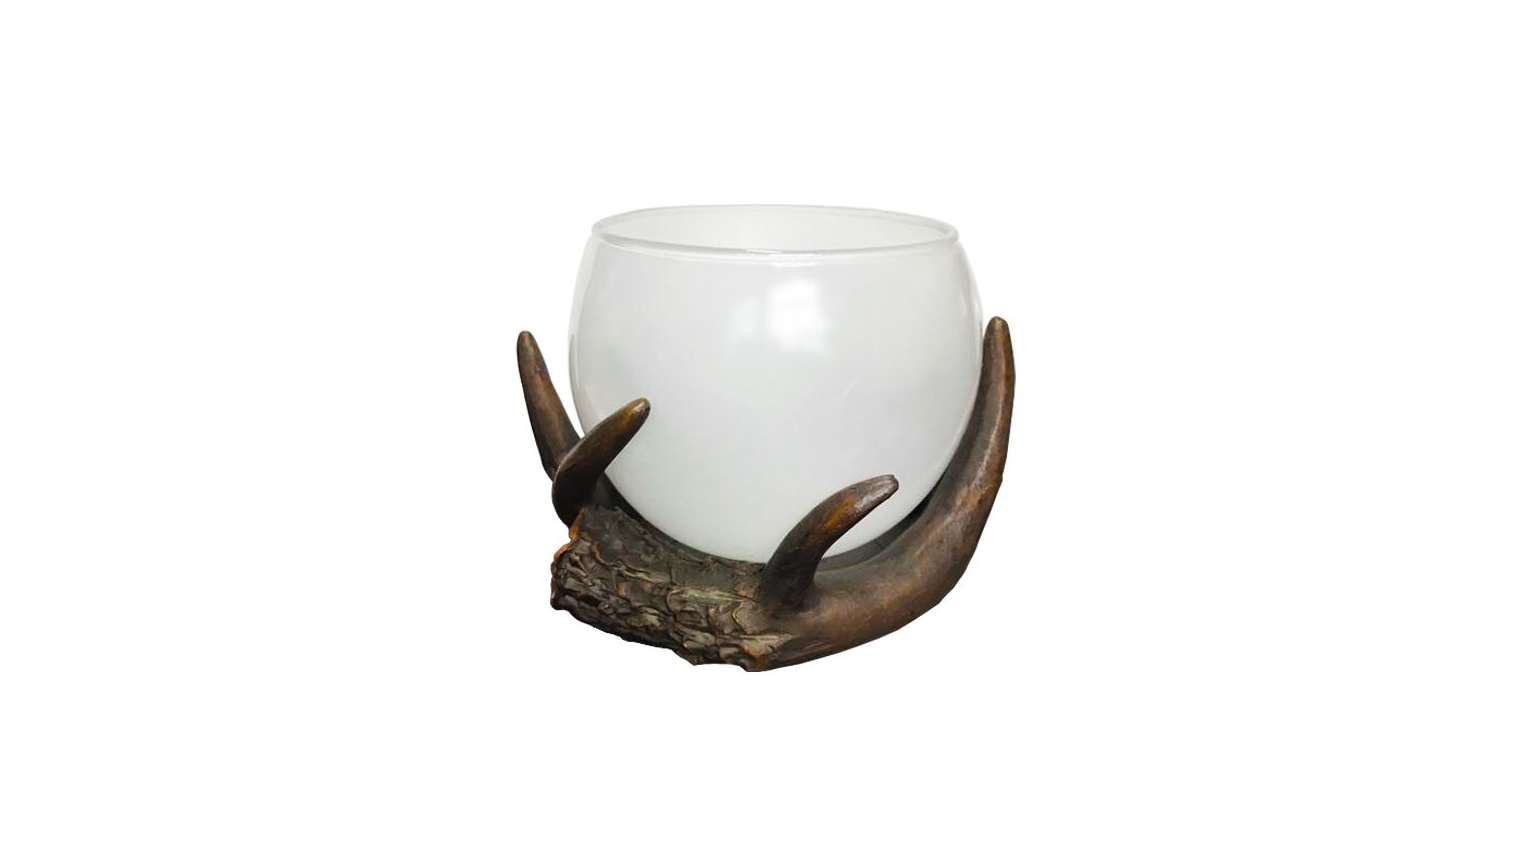 The Amazing Flameless Candle 820242-02 Antler Candle Vase